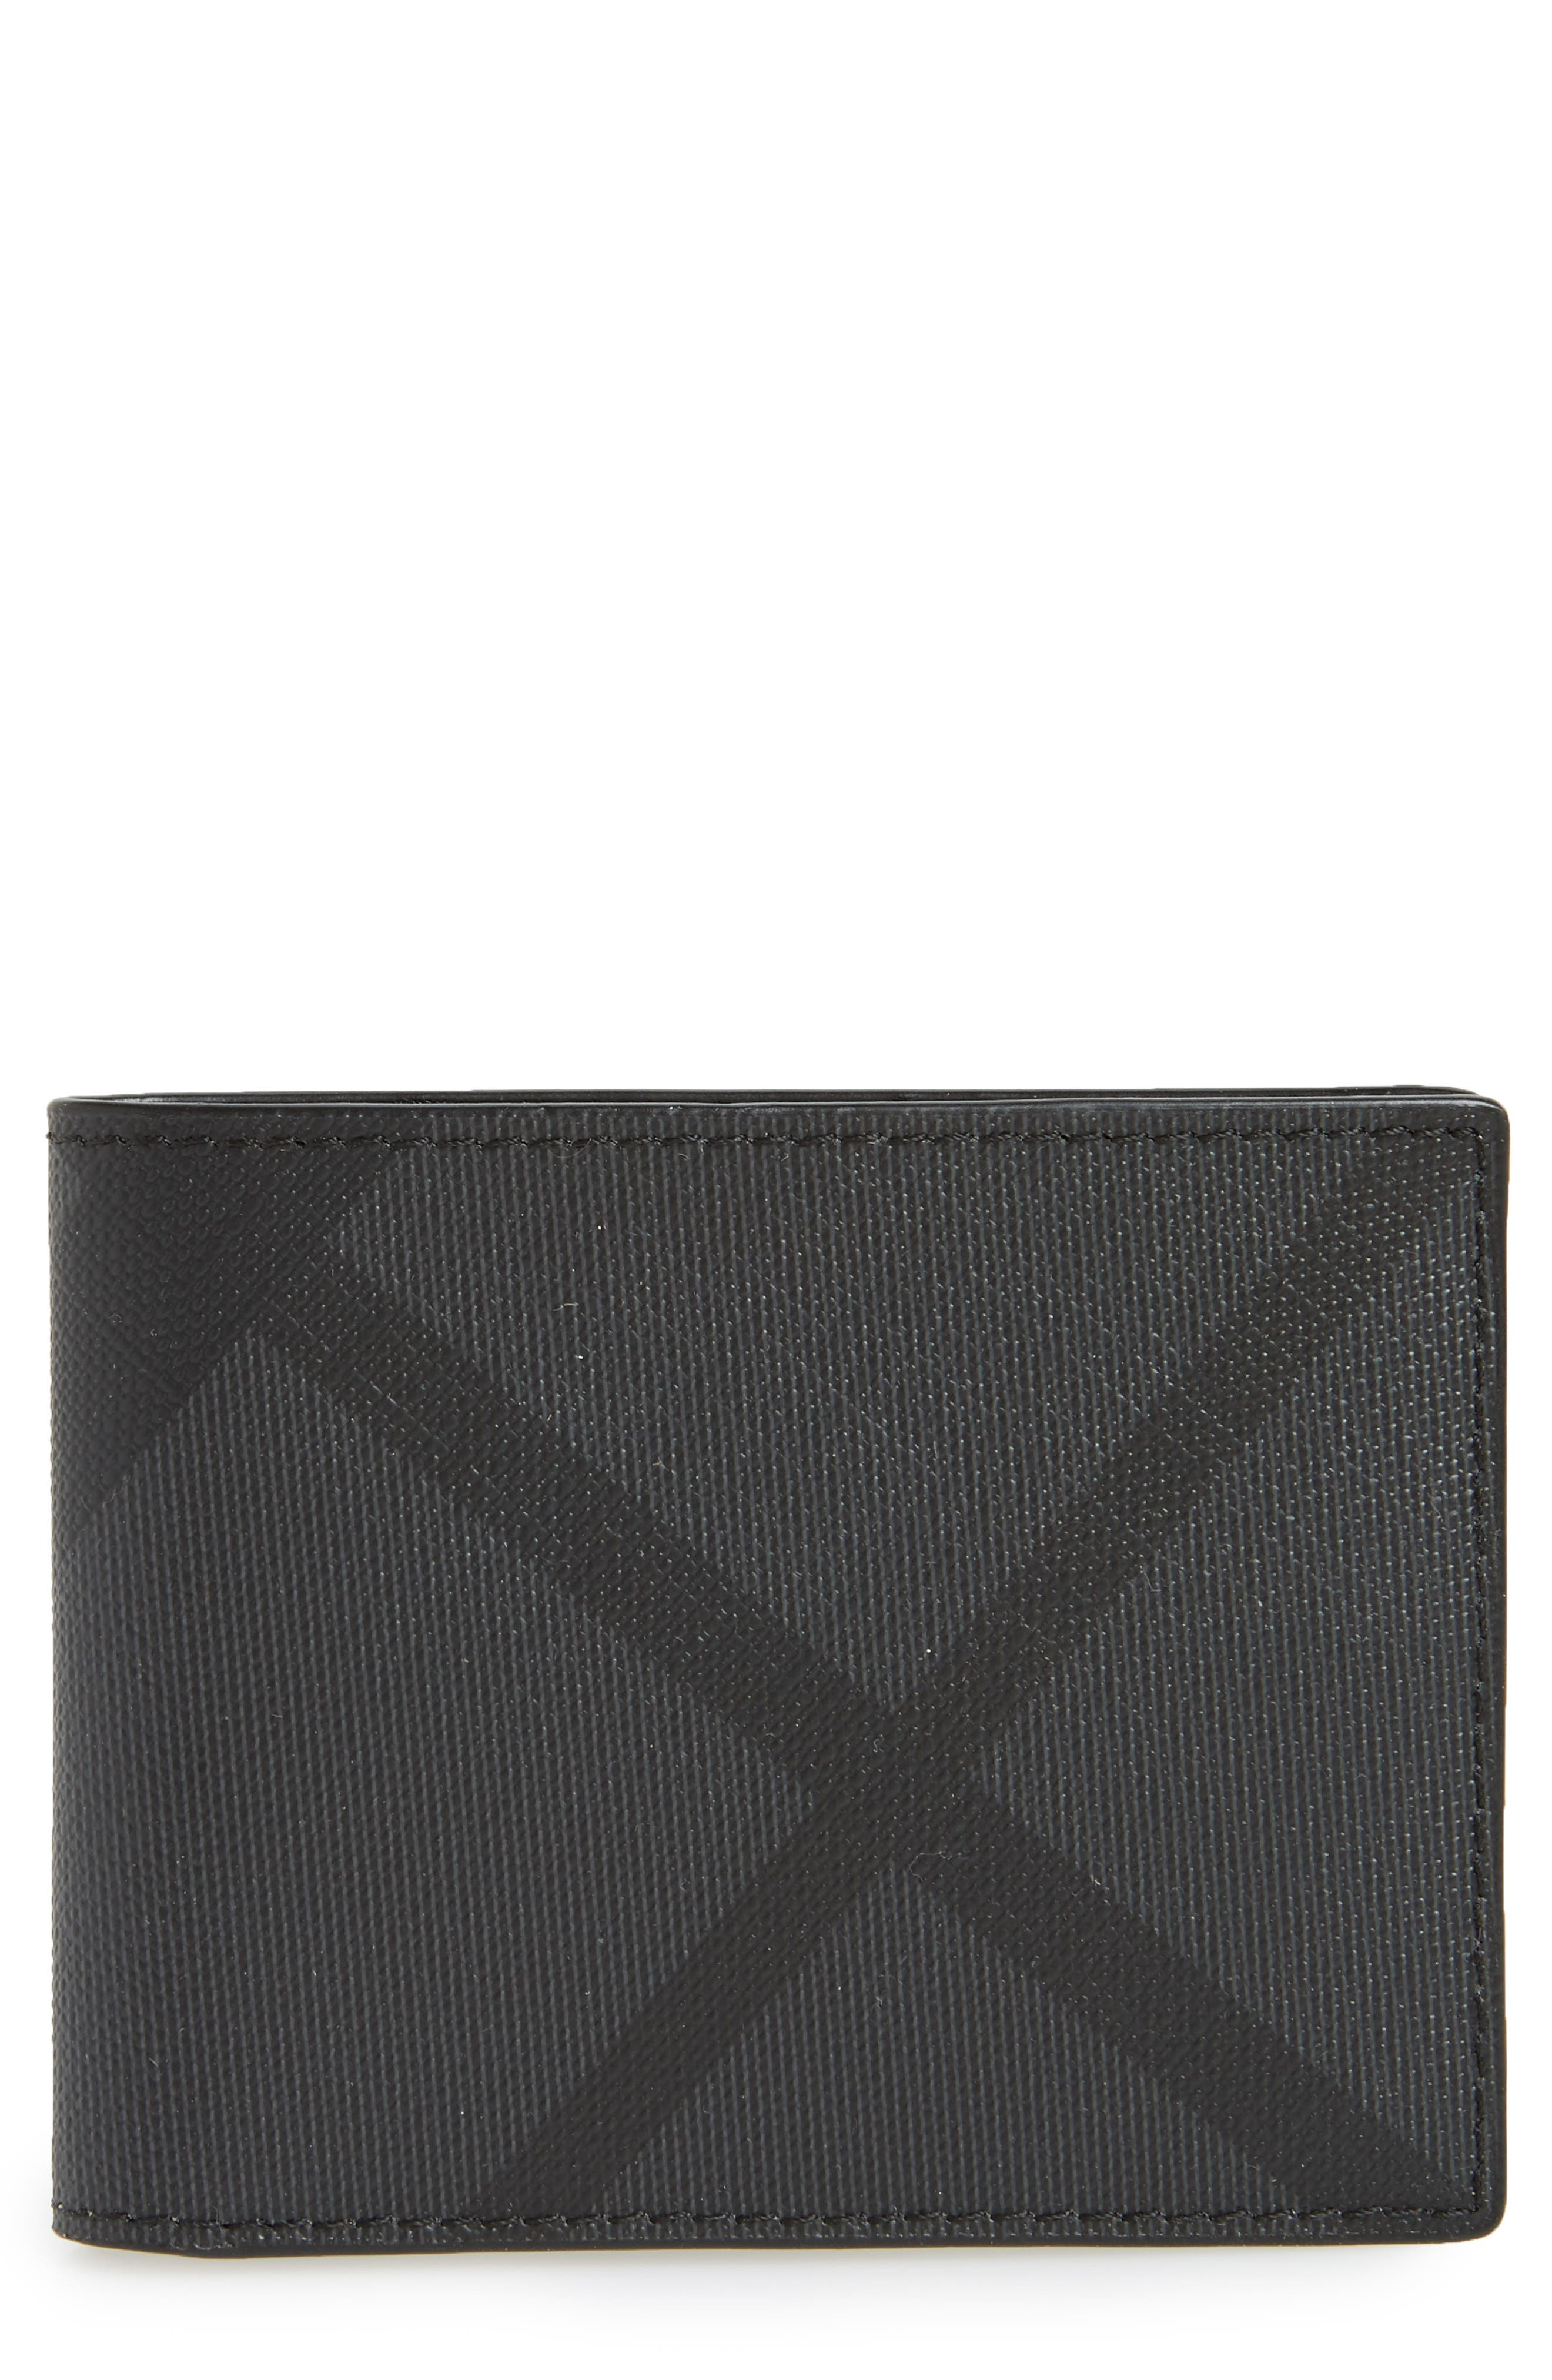 gucci wallet for men. burberry london wallet gucci for men